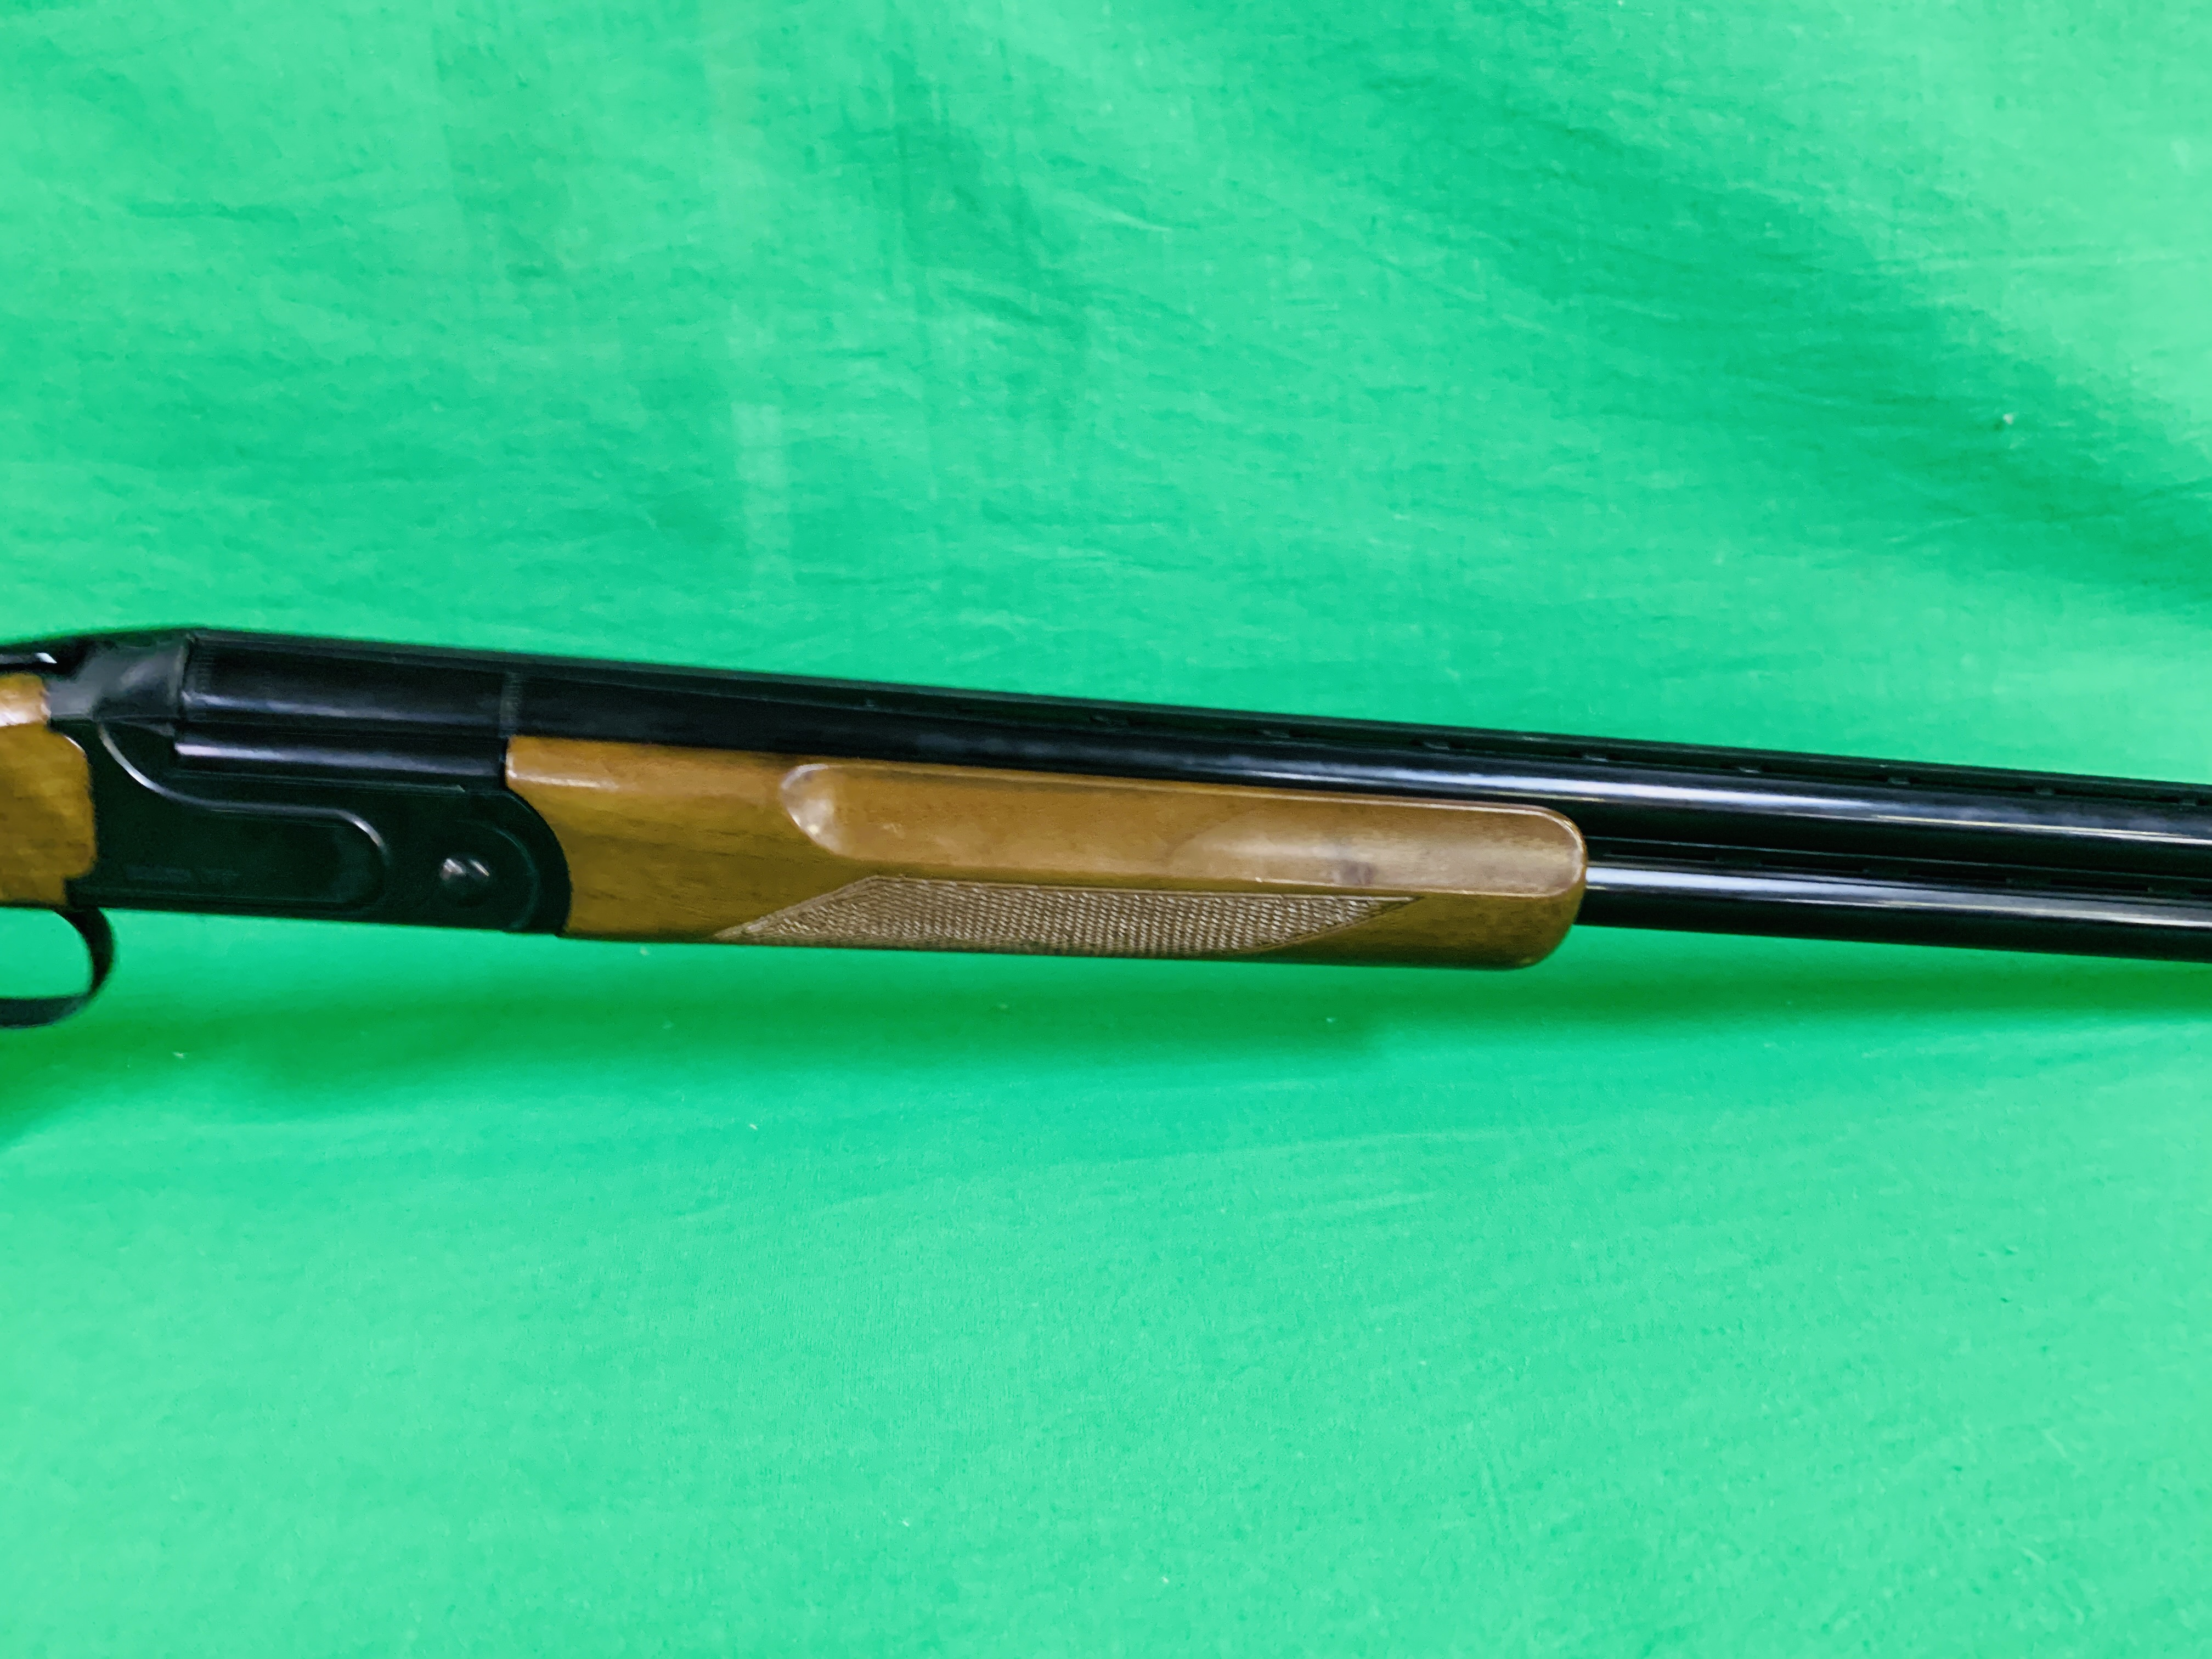 ZAFER MODEL 01612 12 BORE OVER AND UNDER SHOTGUN # 01483, SELECTABLE SINGLE TRIGGER, NON EJECTOR, - Image 5 of 8